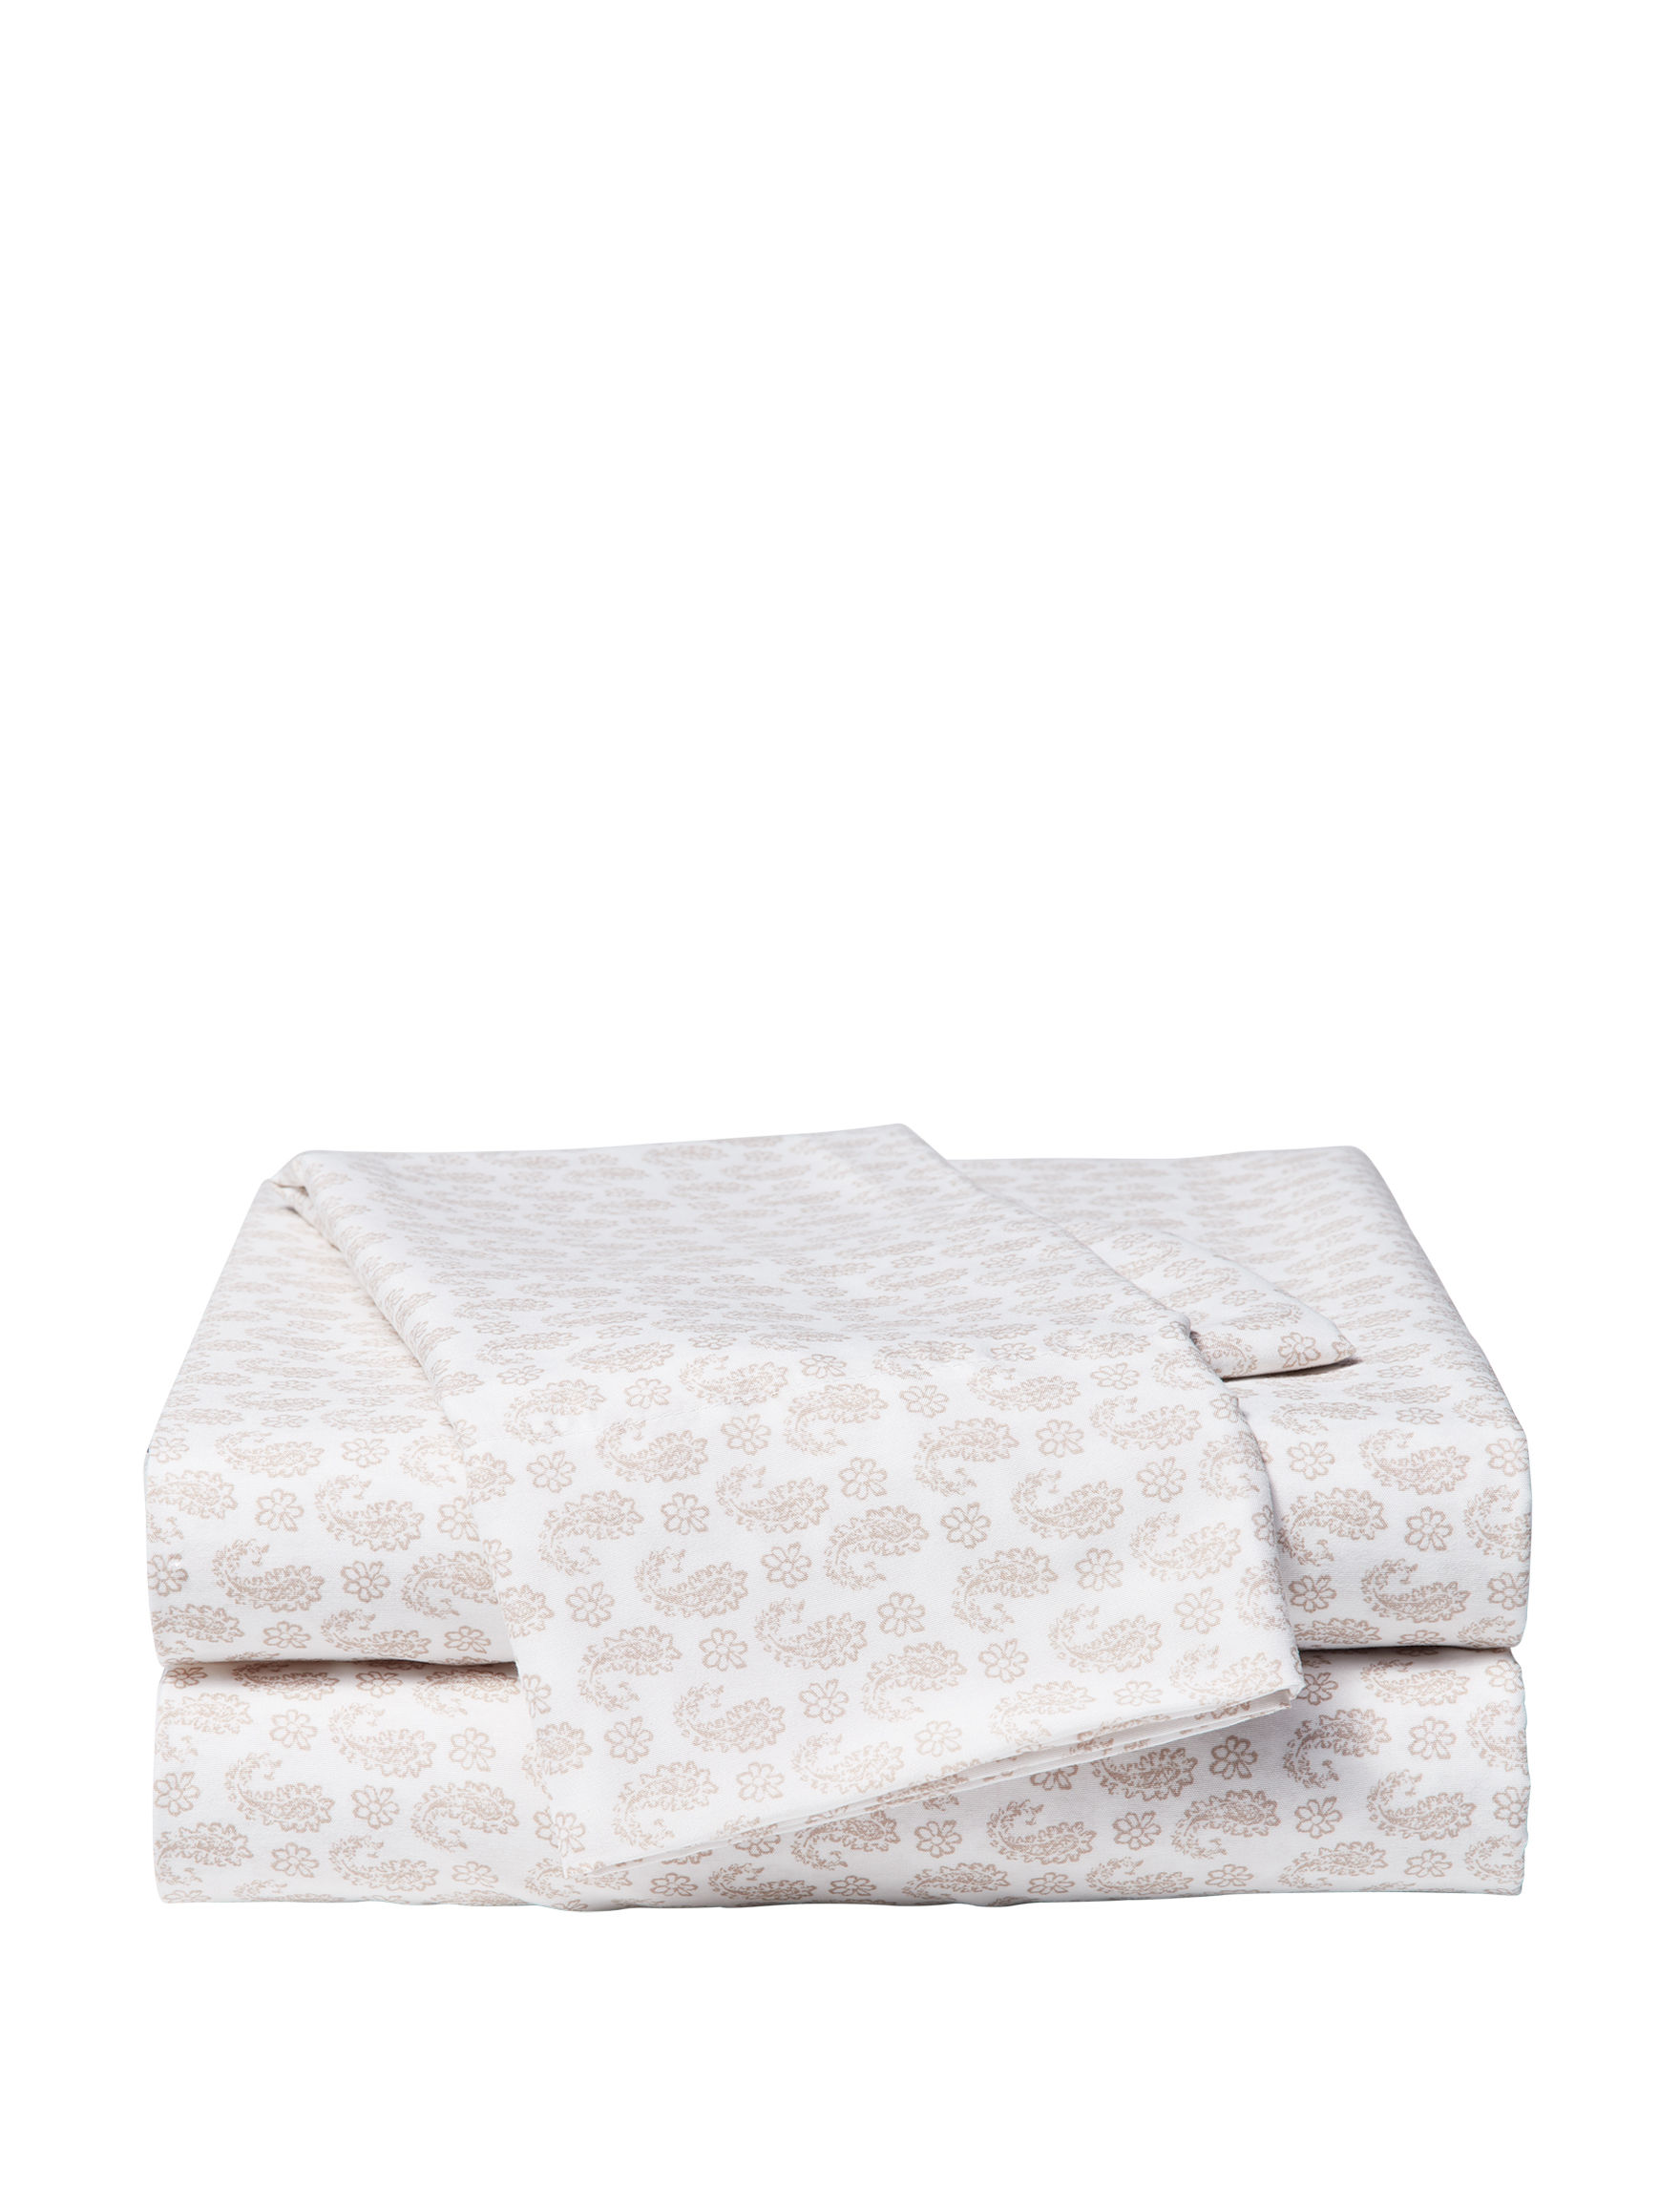 Great Hotels Collection Beige Sheets & Pillowcases